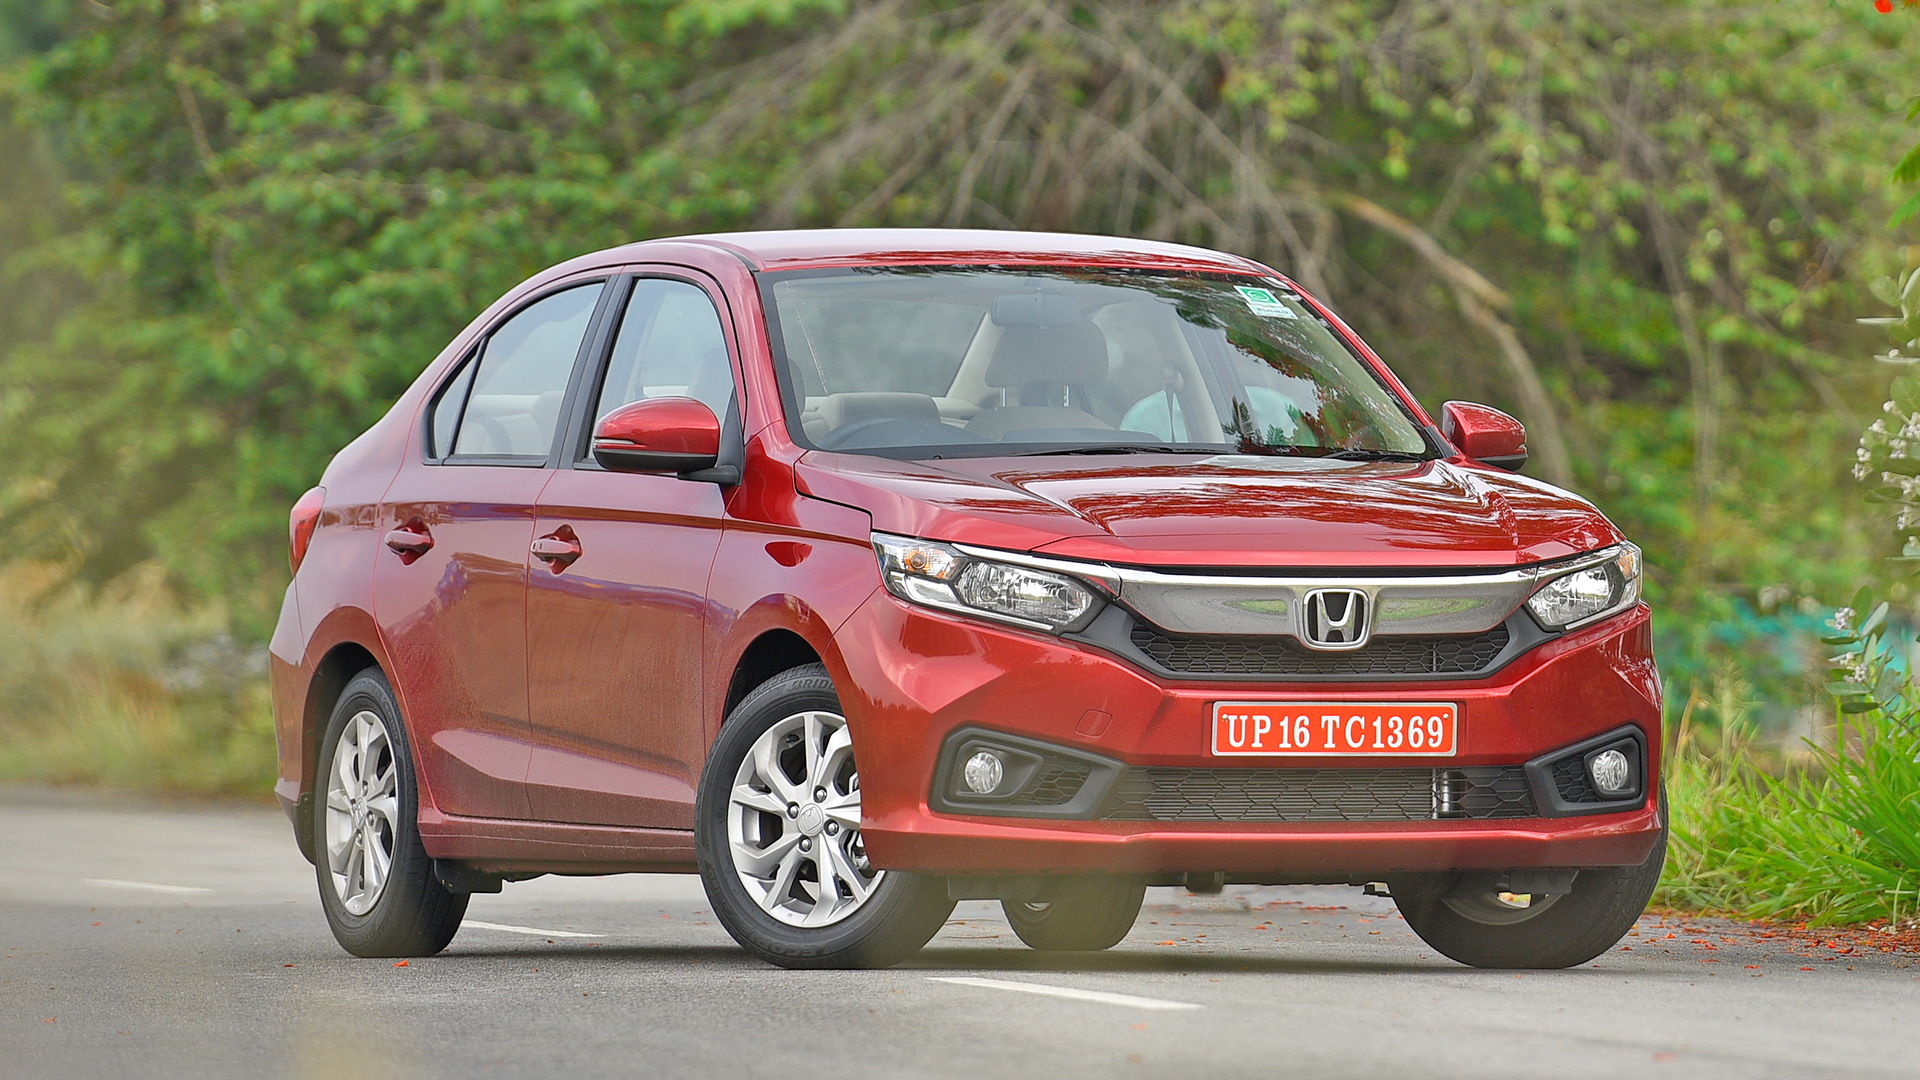 grand new avanza 2017 price in bangladesh all kijang innova 2018 honda amaze mileage reviews specification gallery subscribe to newsletter